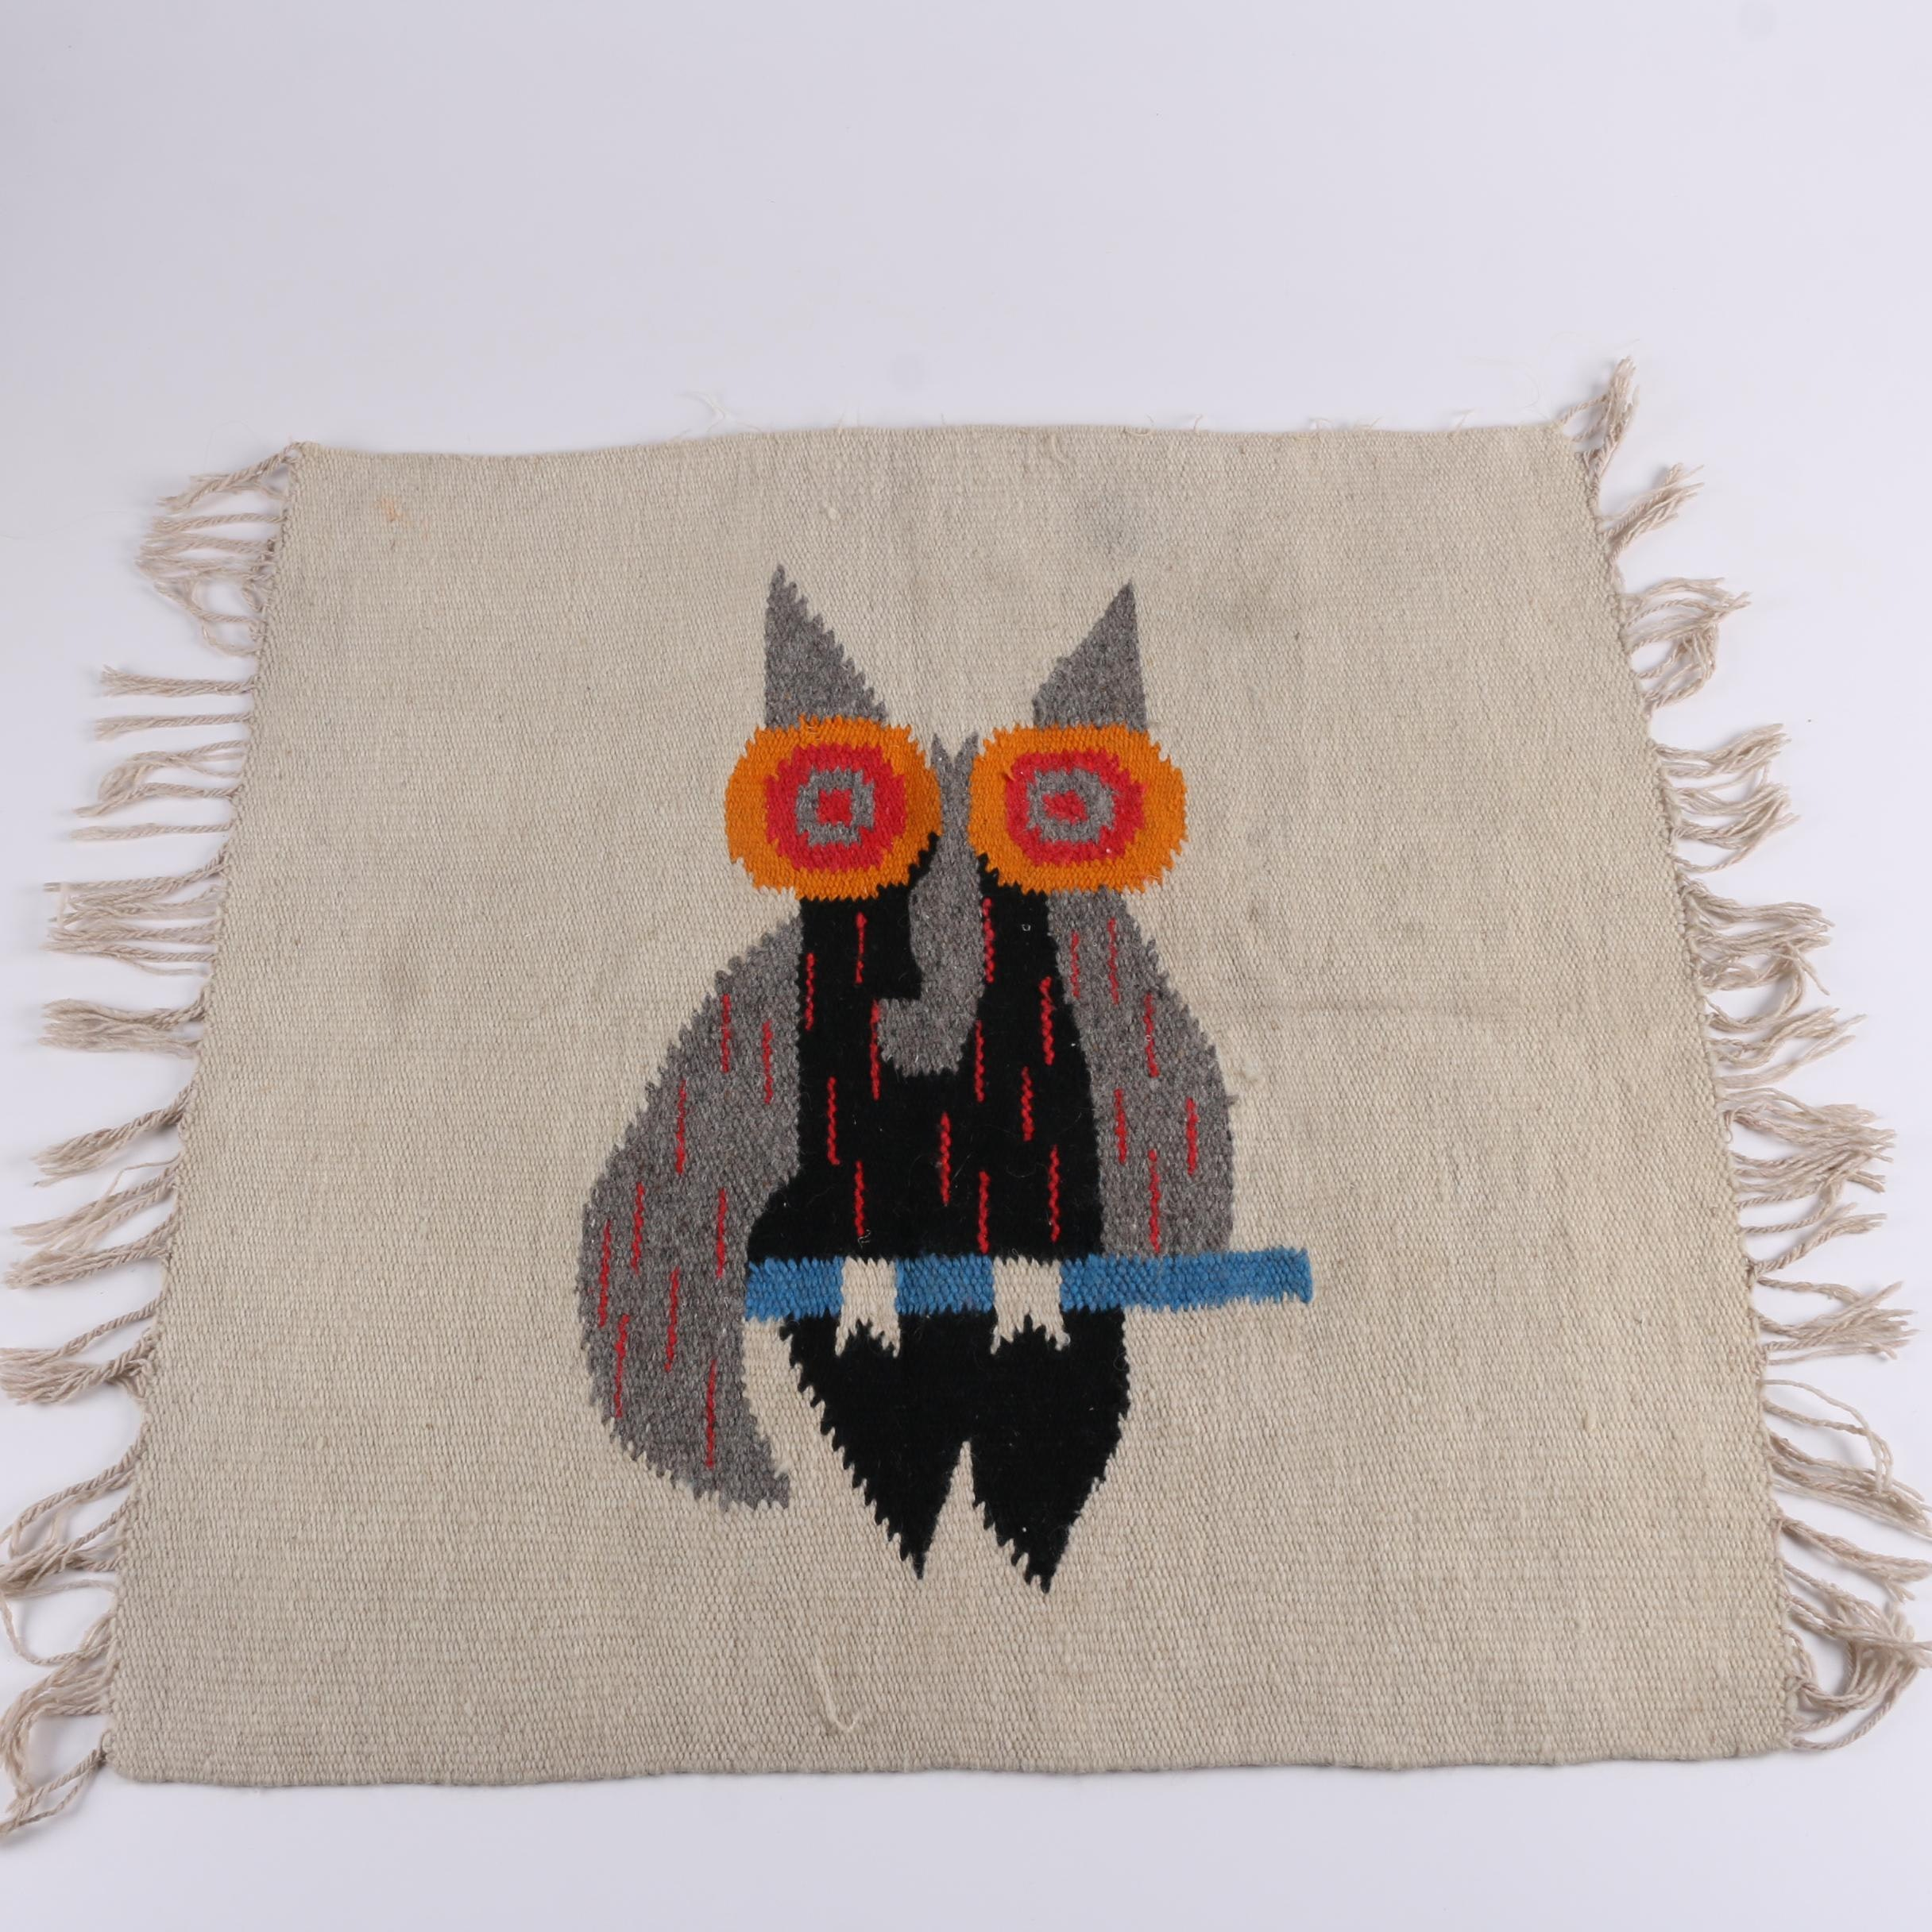 Woven Owl Themed Wool Textile